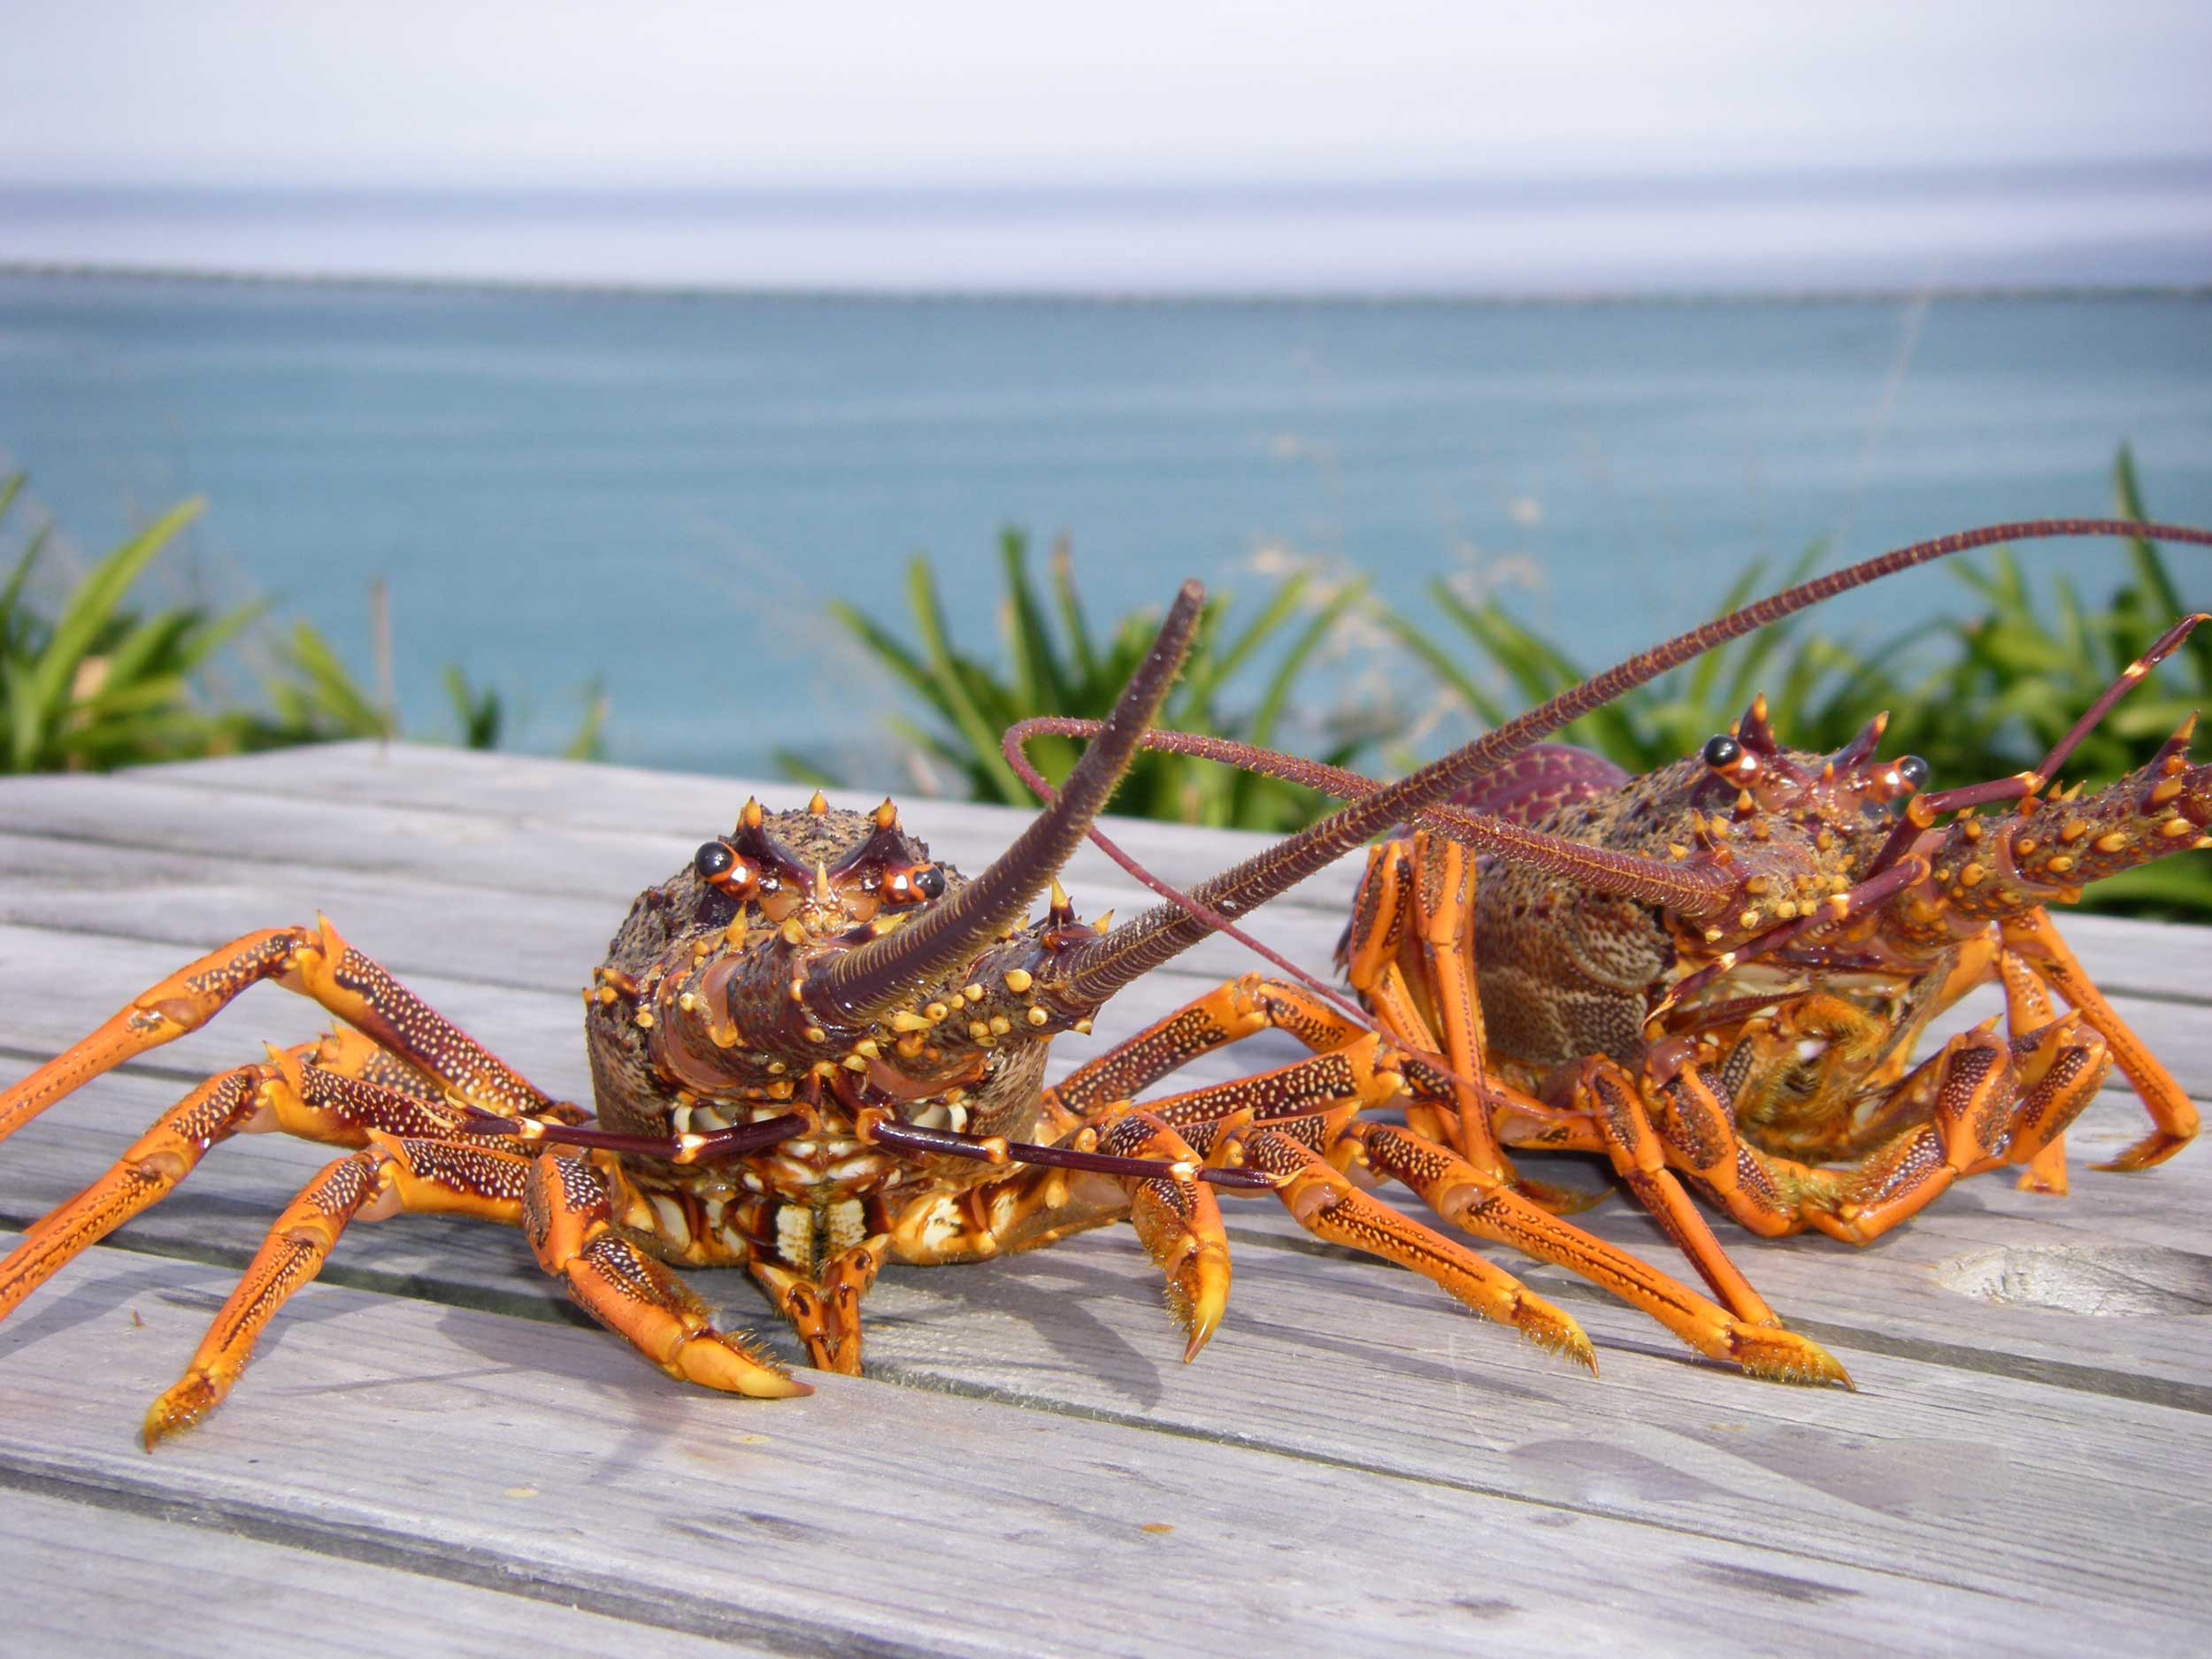 crayfish-home.jpg